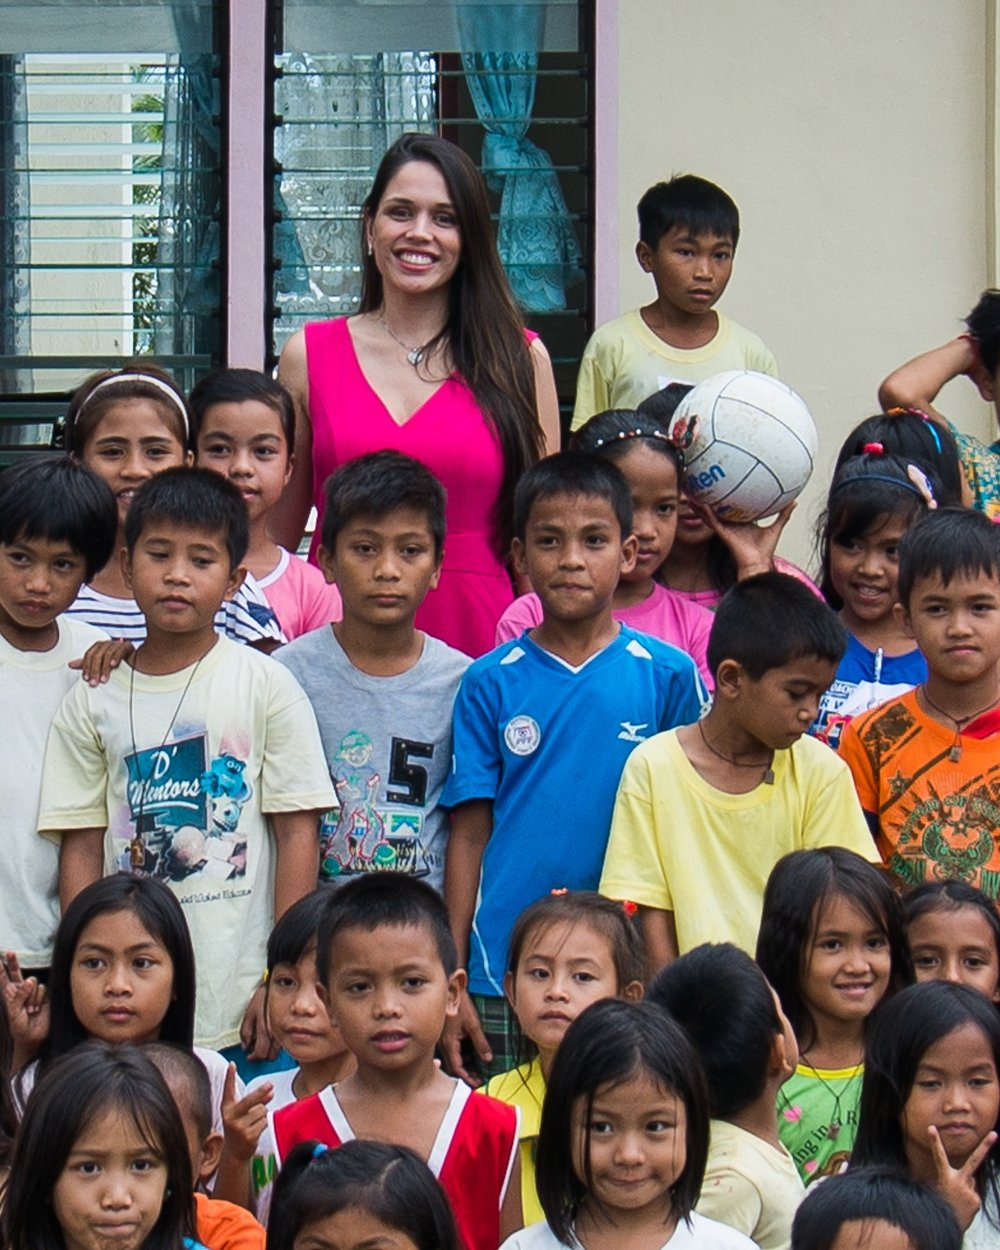 THE SHERYL LYNN FOUNDATION   With a main focus on children and education, The Sheryl Lynn Foundation has since it was was founded in 2007 actively helped and supported thousands of Filipino children in poverty. Read more  here .